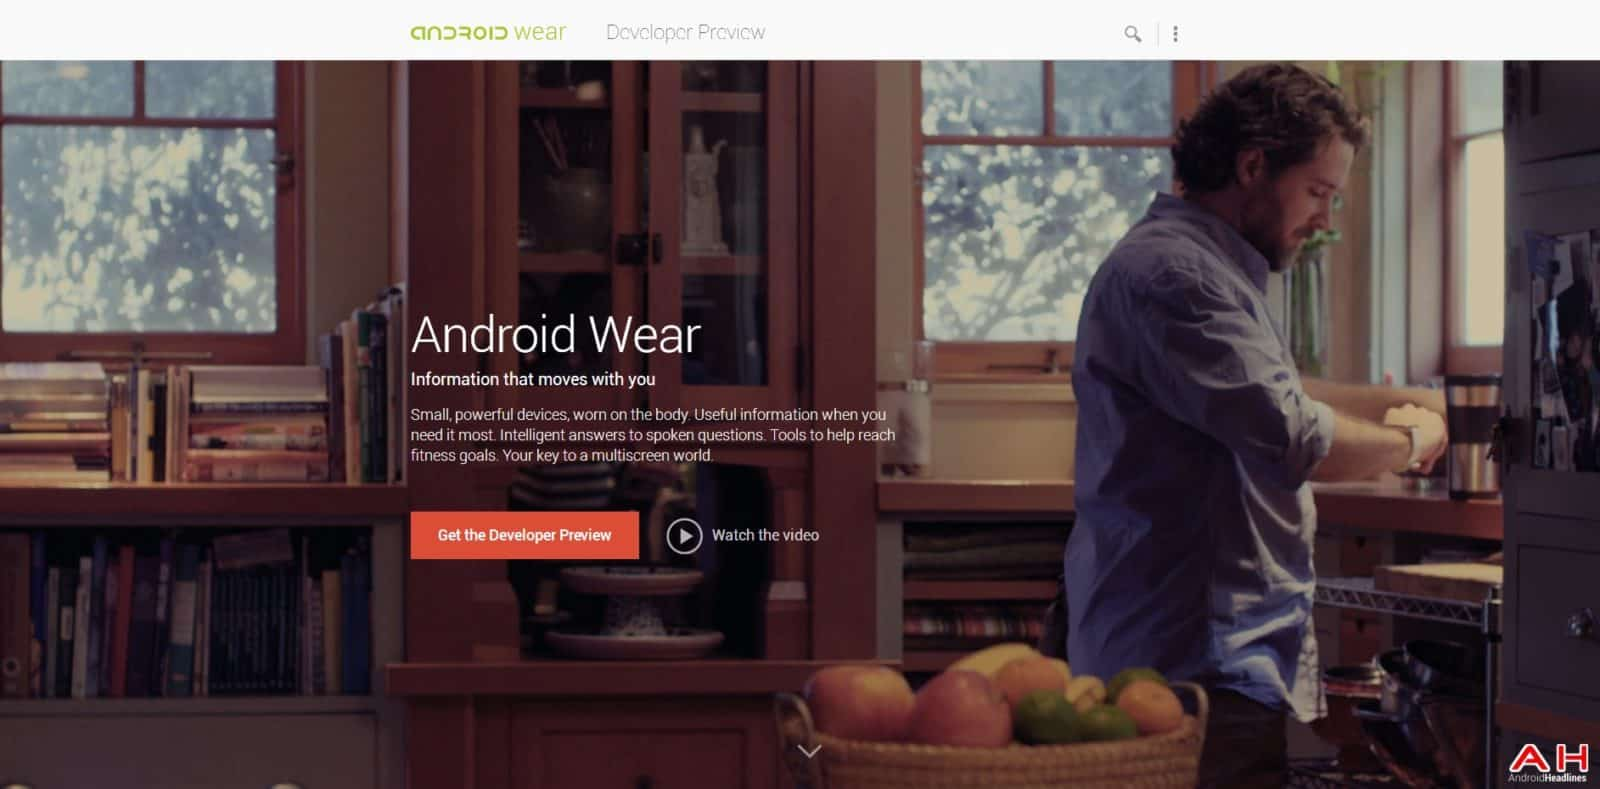 AH Android Wear Site 1.0